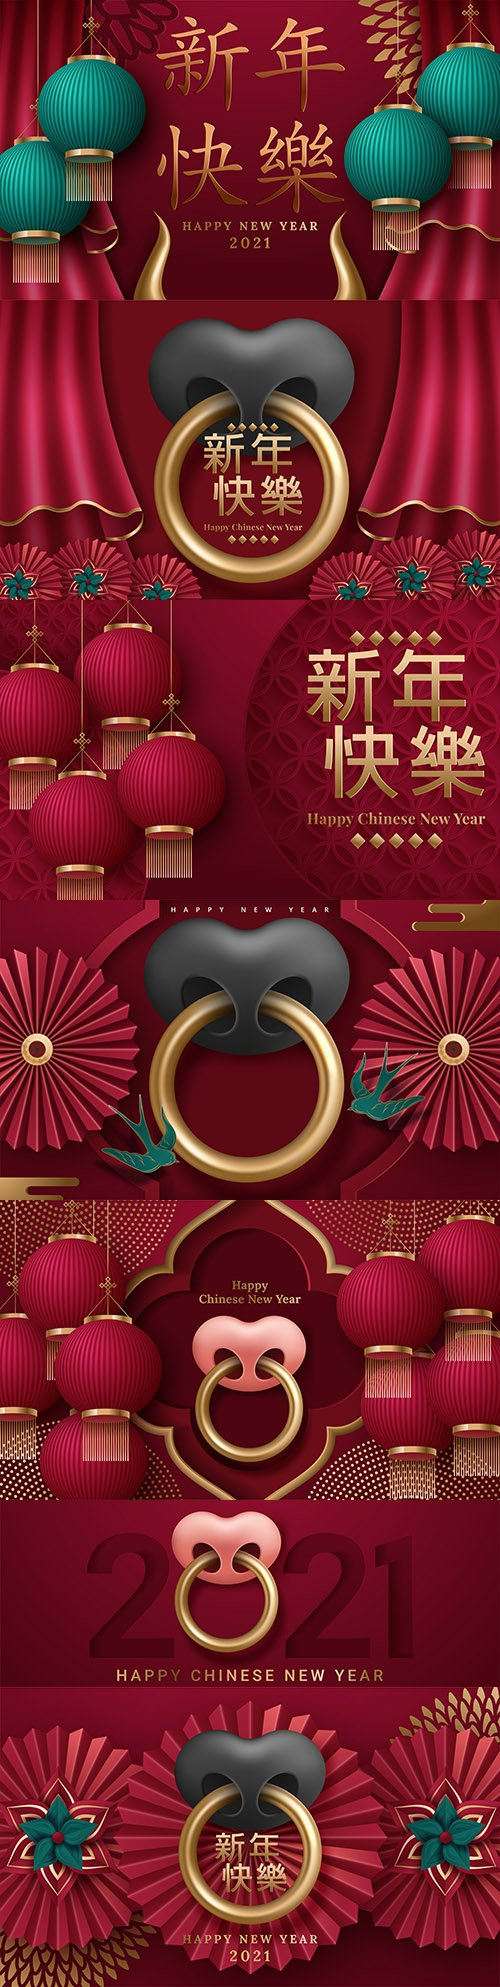 Happy Chinese New Year flower and lantern decorative design 2